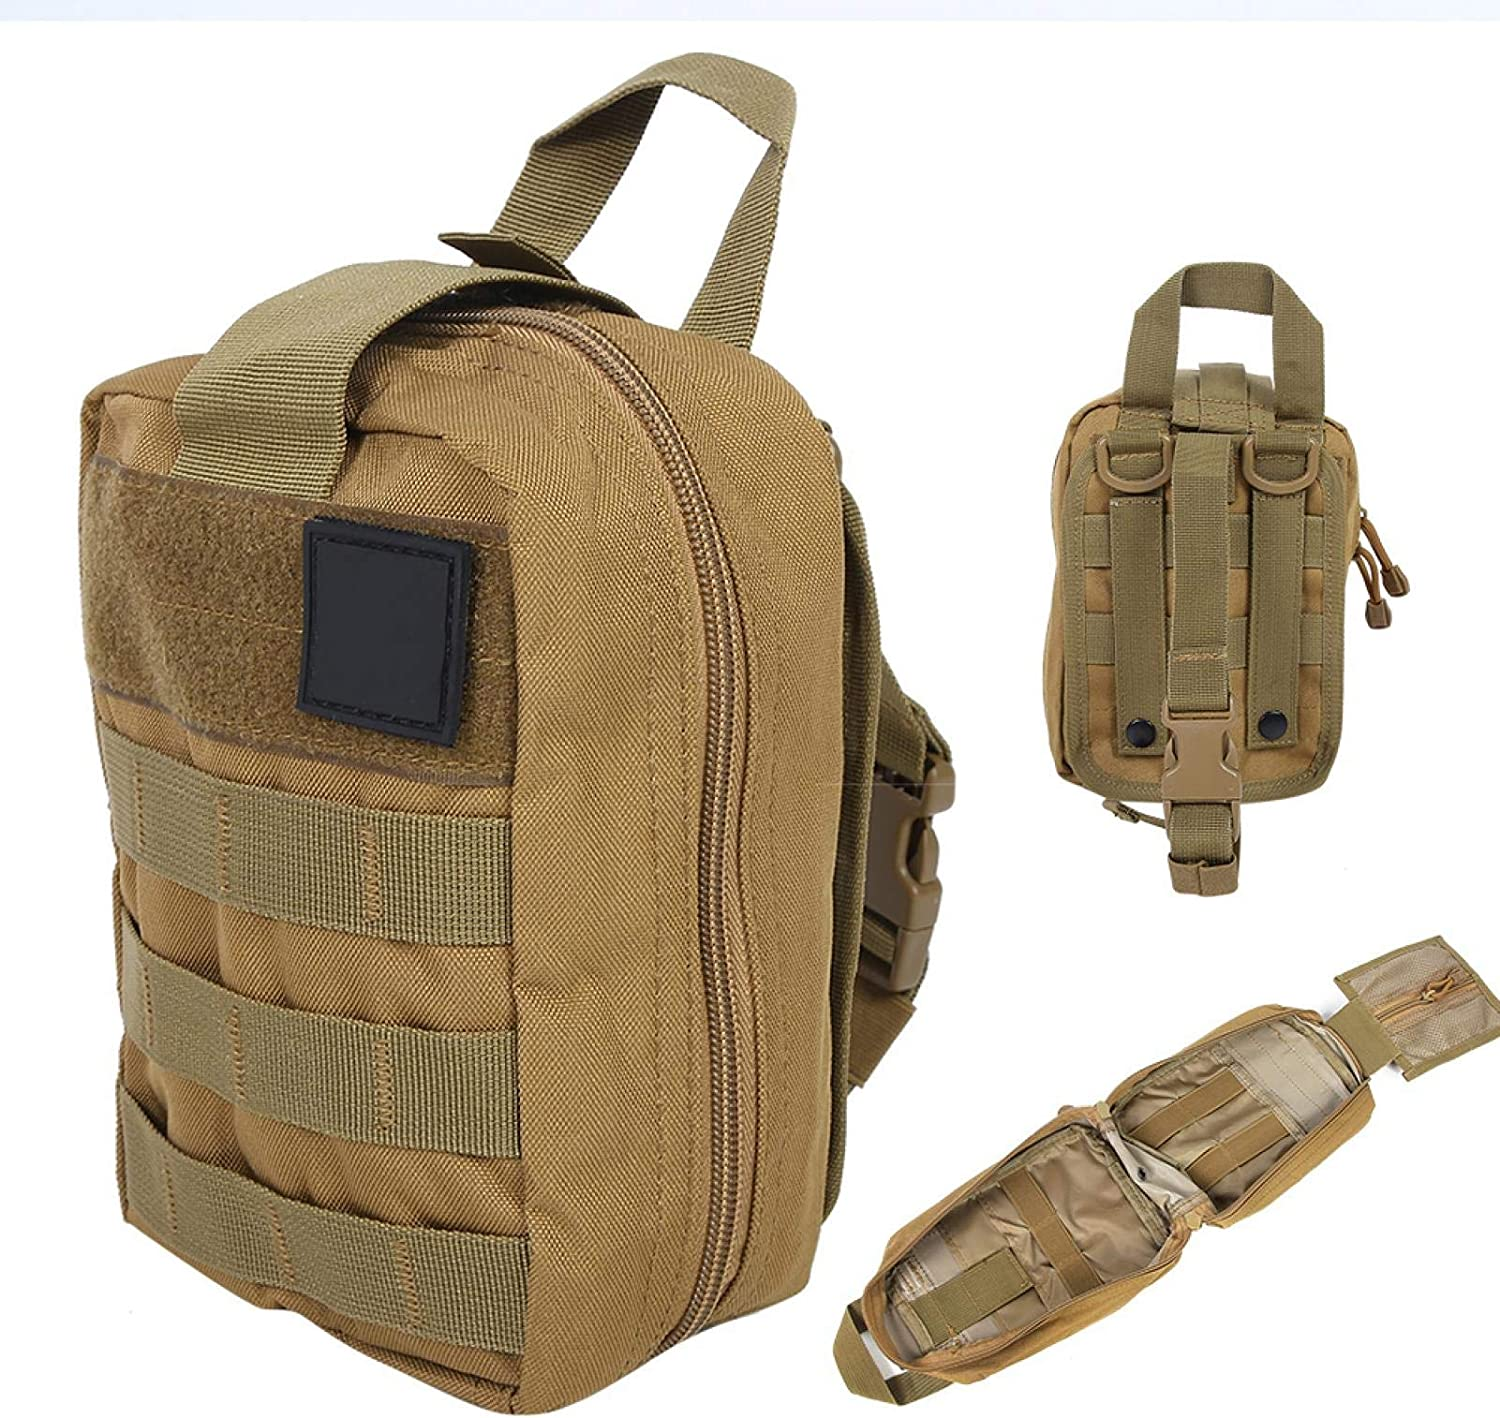 Tactical Pouch First Japan Maker New Aid New life Kit Multipurpose Emerg Profesaional for